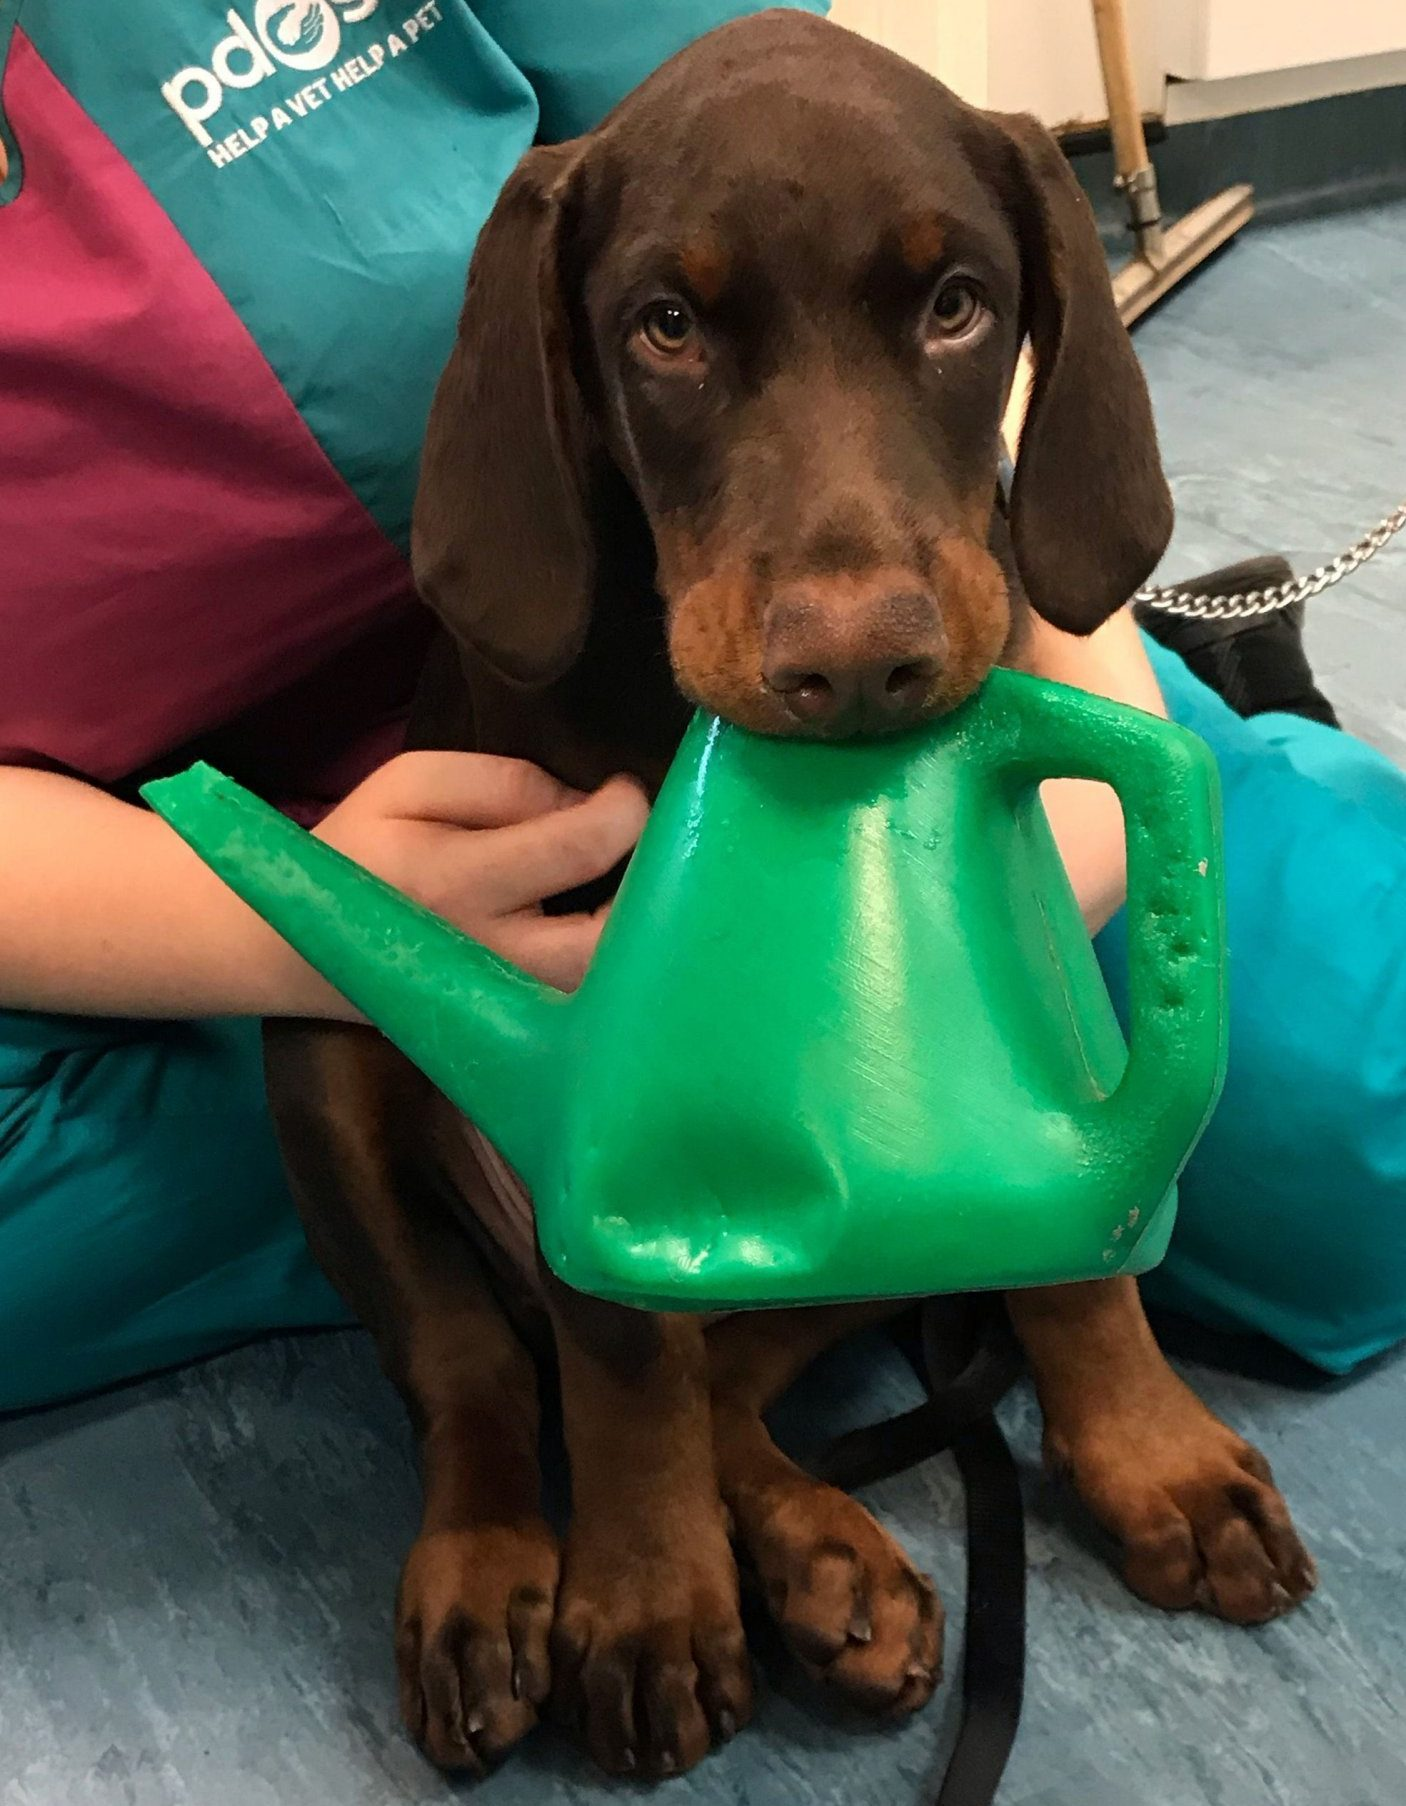 PDSA undated handout photo of Doberman puppy Cassius who had a watering can wedged in its mouth. PRESS ASSOCIATION Photo. Issue date: Wednesday February 20, 2019. The three-month-old puppy from Hampstead Heath, north London needed to be sedated by vets from the PDSA animal charity because of his distress before the watering can was cut away and removed. See PA story ANIMALS Puppy. Photo credit should read: PDSA/PA Wire NOTE TO EDITORS: This handout photo may only be used in for editorial reporting purposes for the contemporaneous illustration of events, things or the people in the image or facts mentioned in the caption. Reuse of the picture may require further permission from the copyright holder.